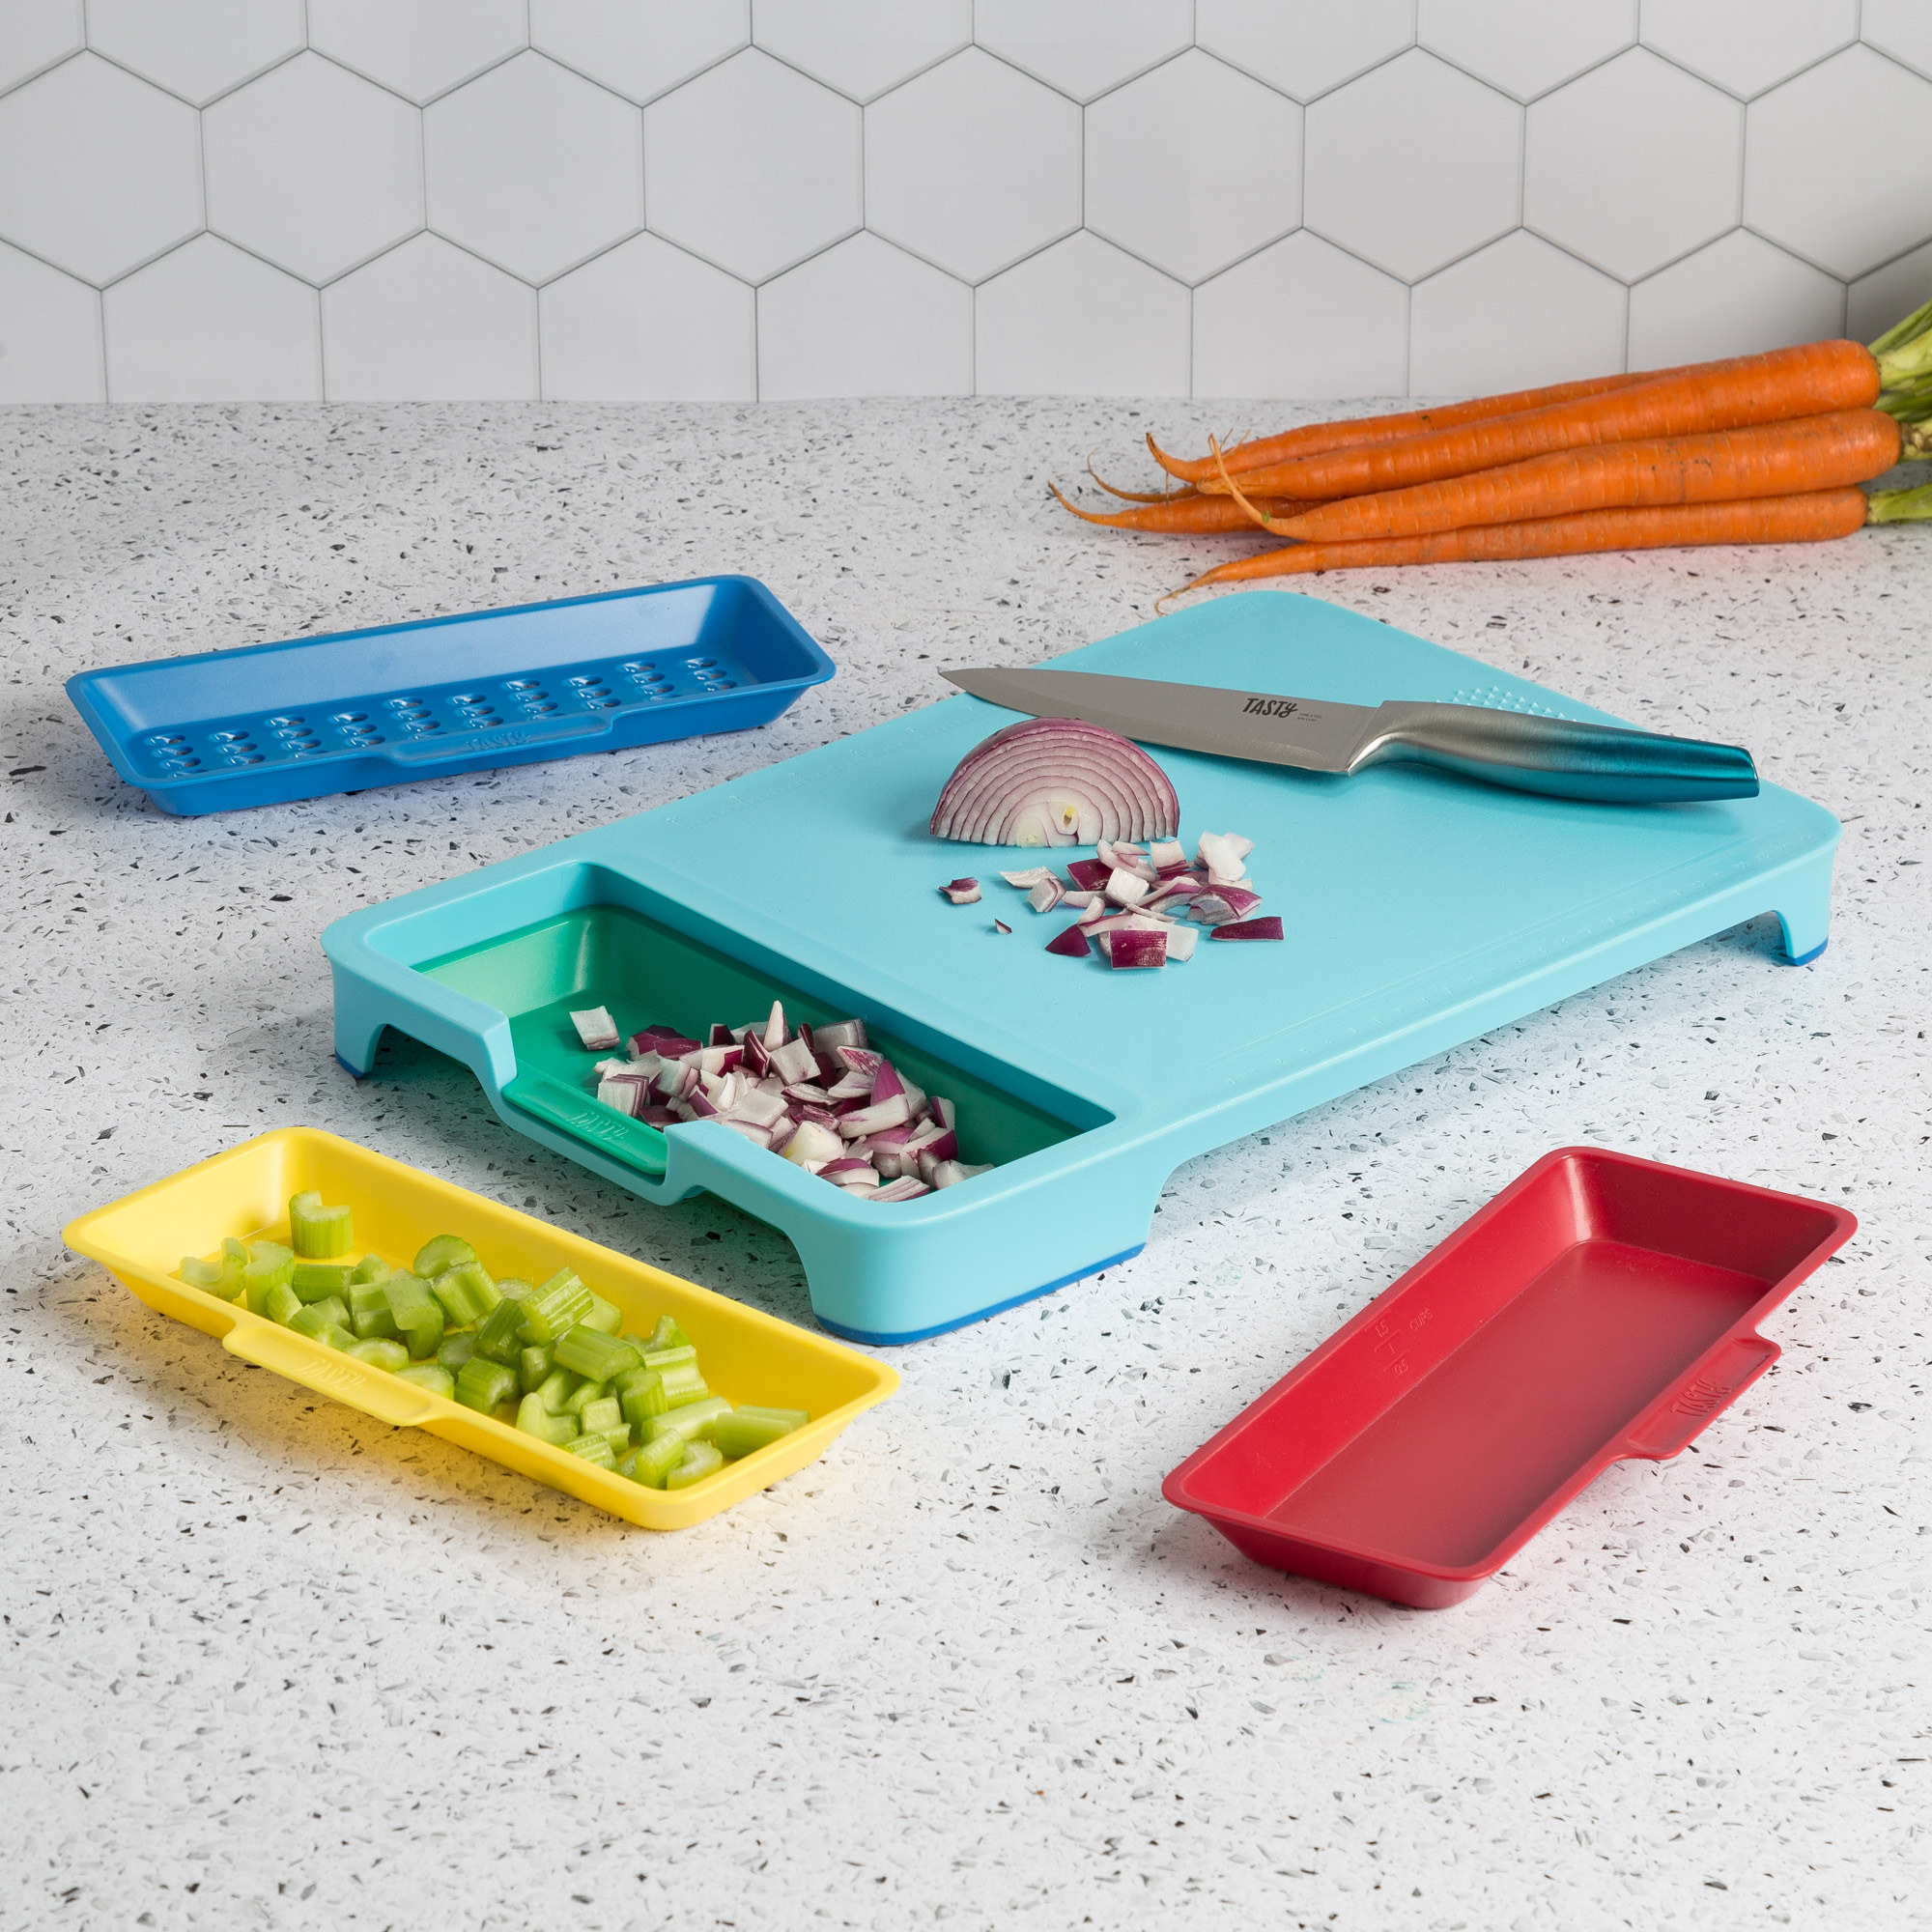 the blue cutting board with diced onion on it and in the green tray, and the blue, red, and yellow trays, with one holding celery, next to it on a counter